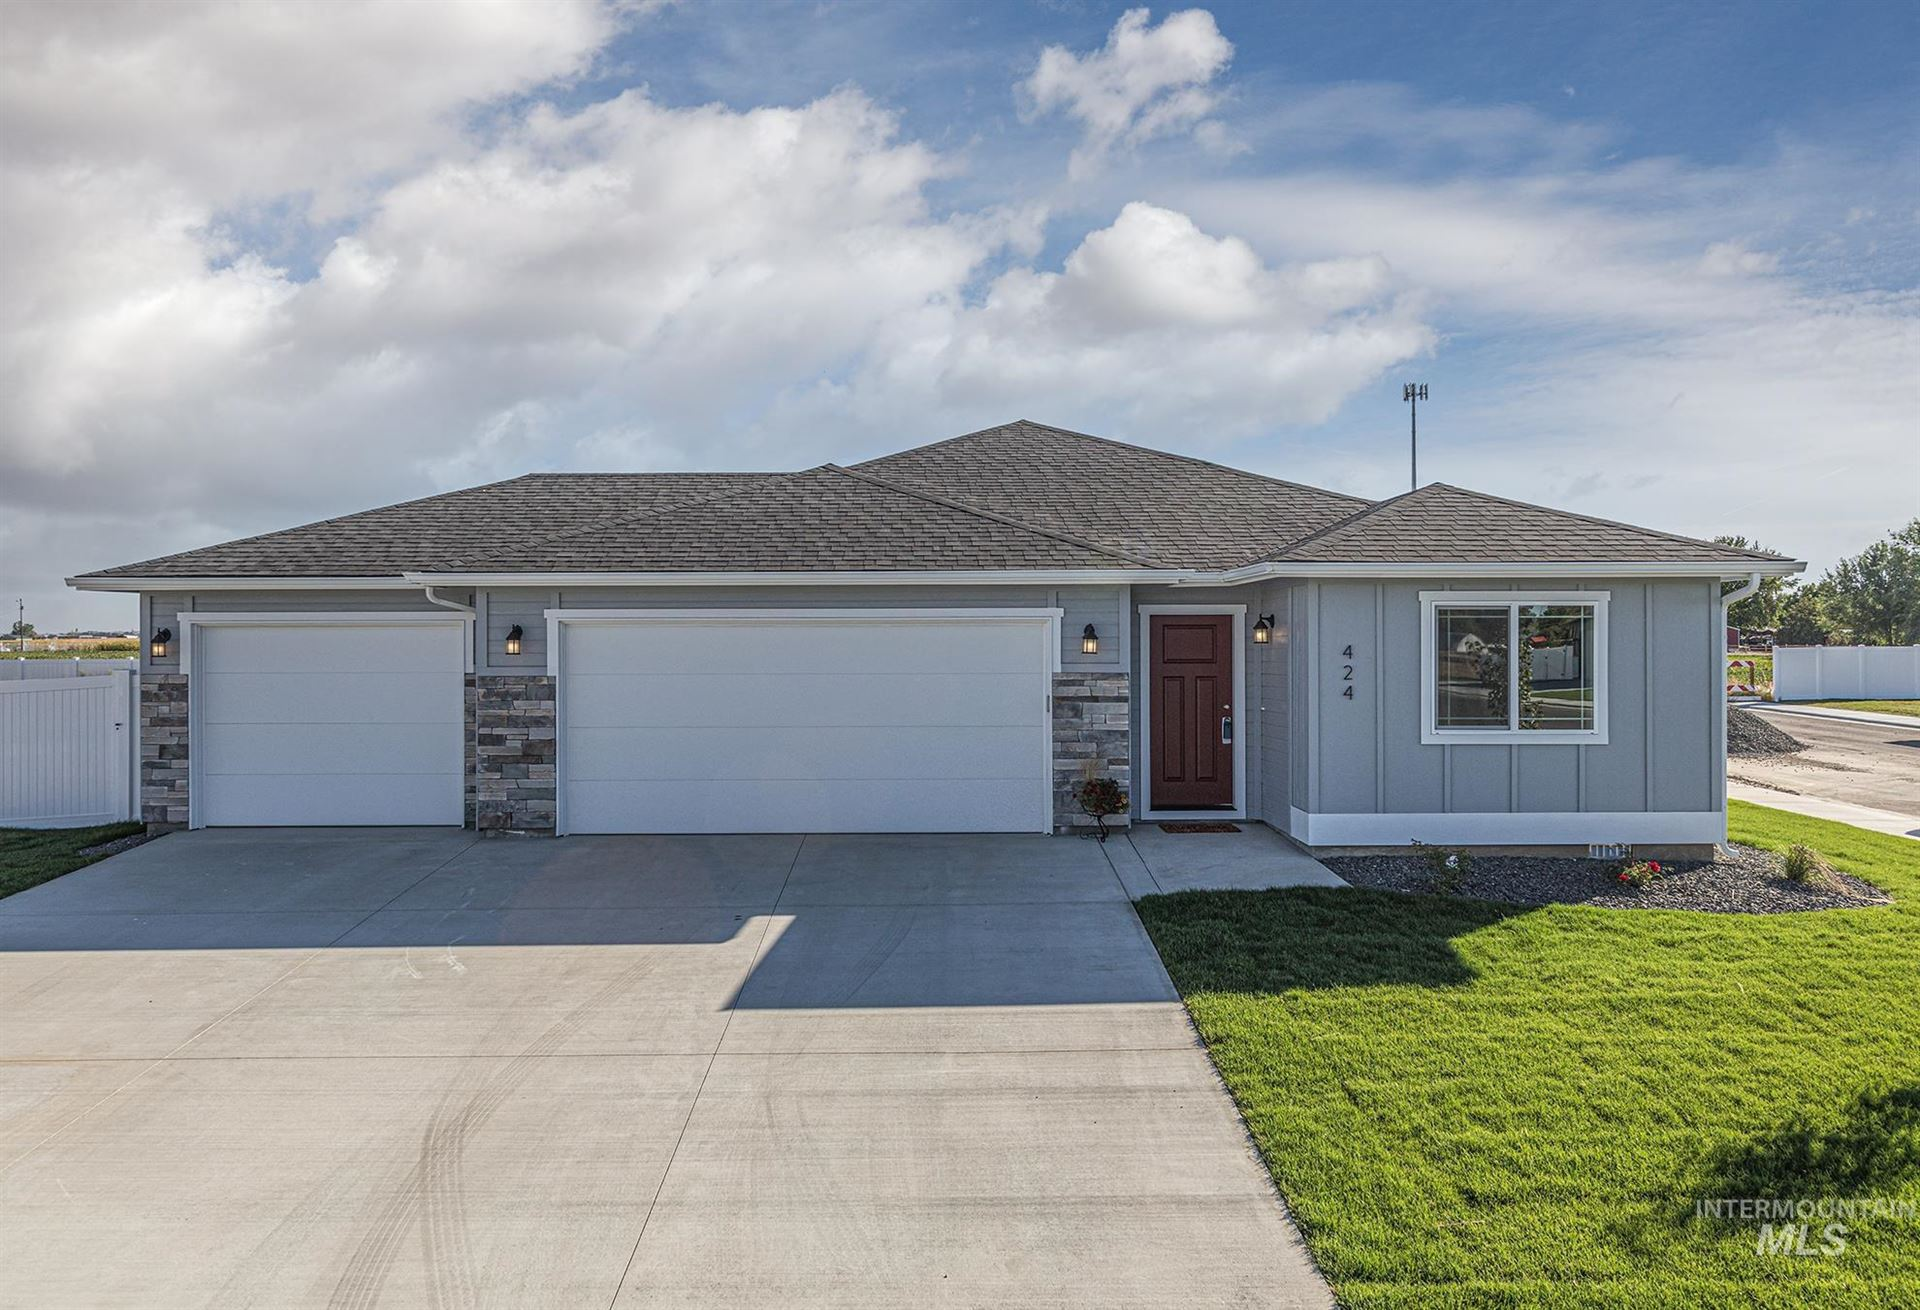 424 Stagecoach Ave., Fruitland, ID 83619 - MLS#: 98820209